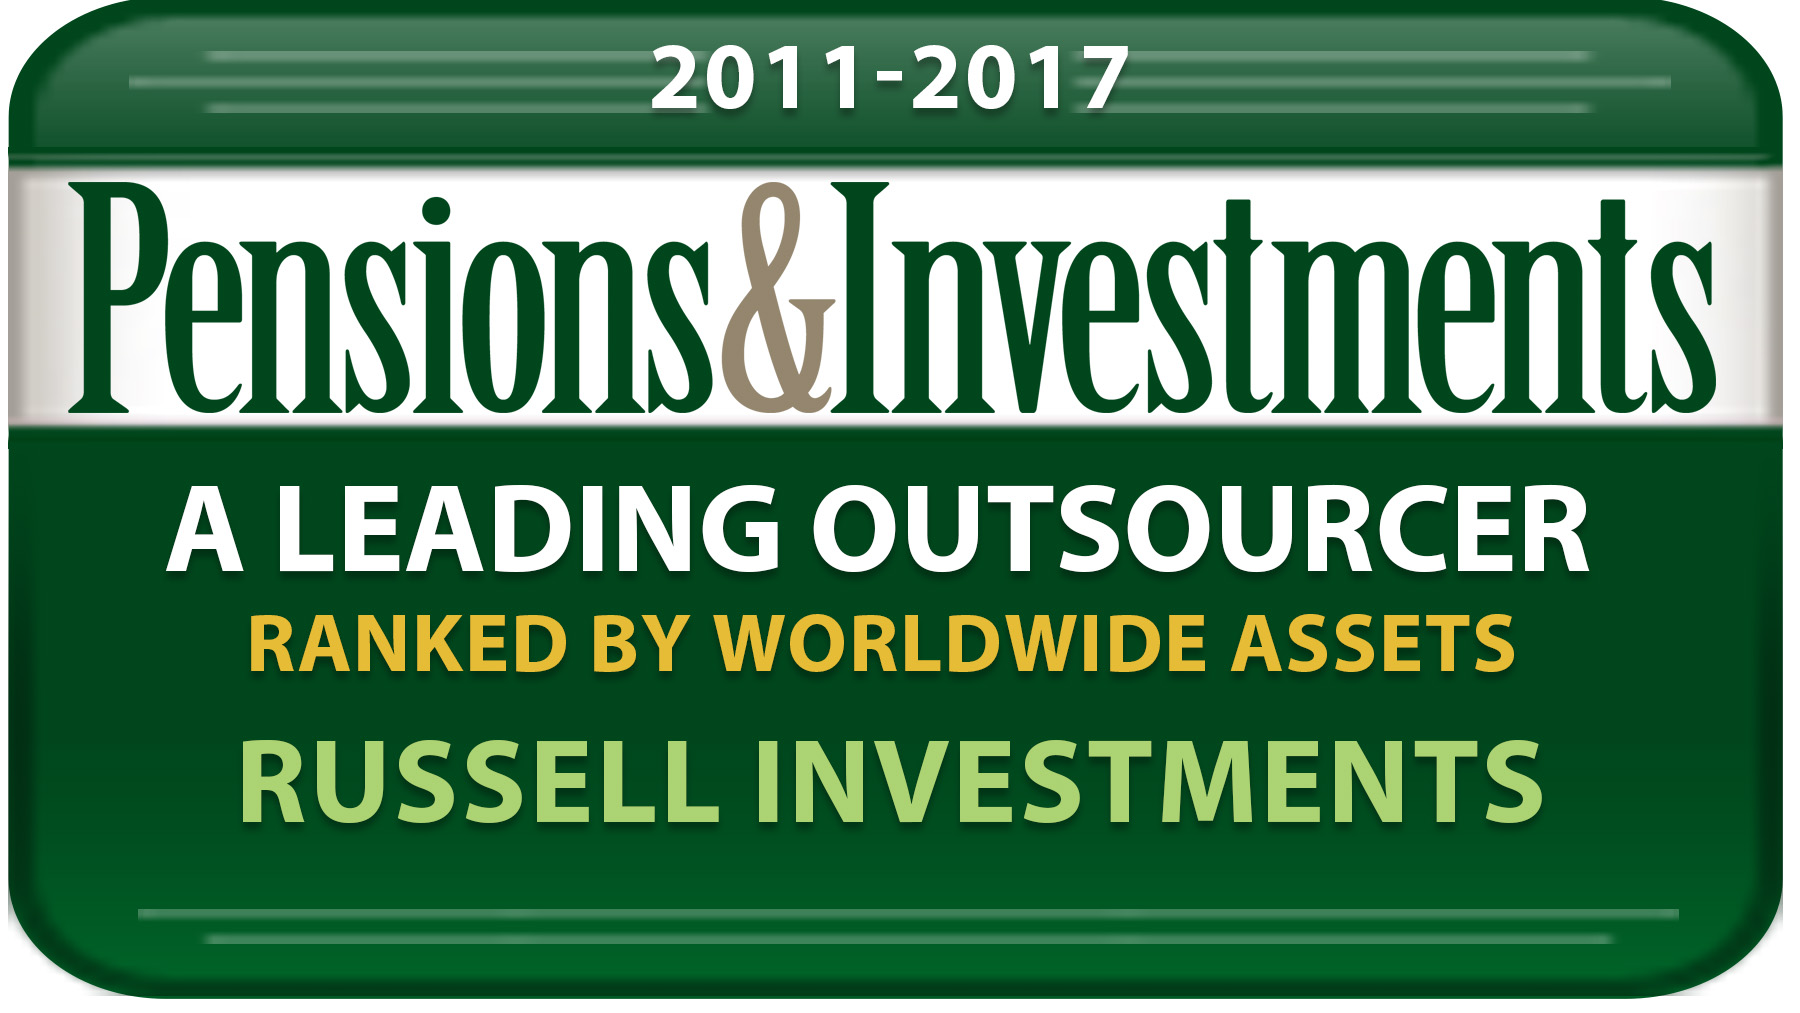 2011-2015 Pensions and Investments Largest Outsourcer ranked by worldwide assets